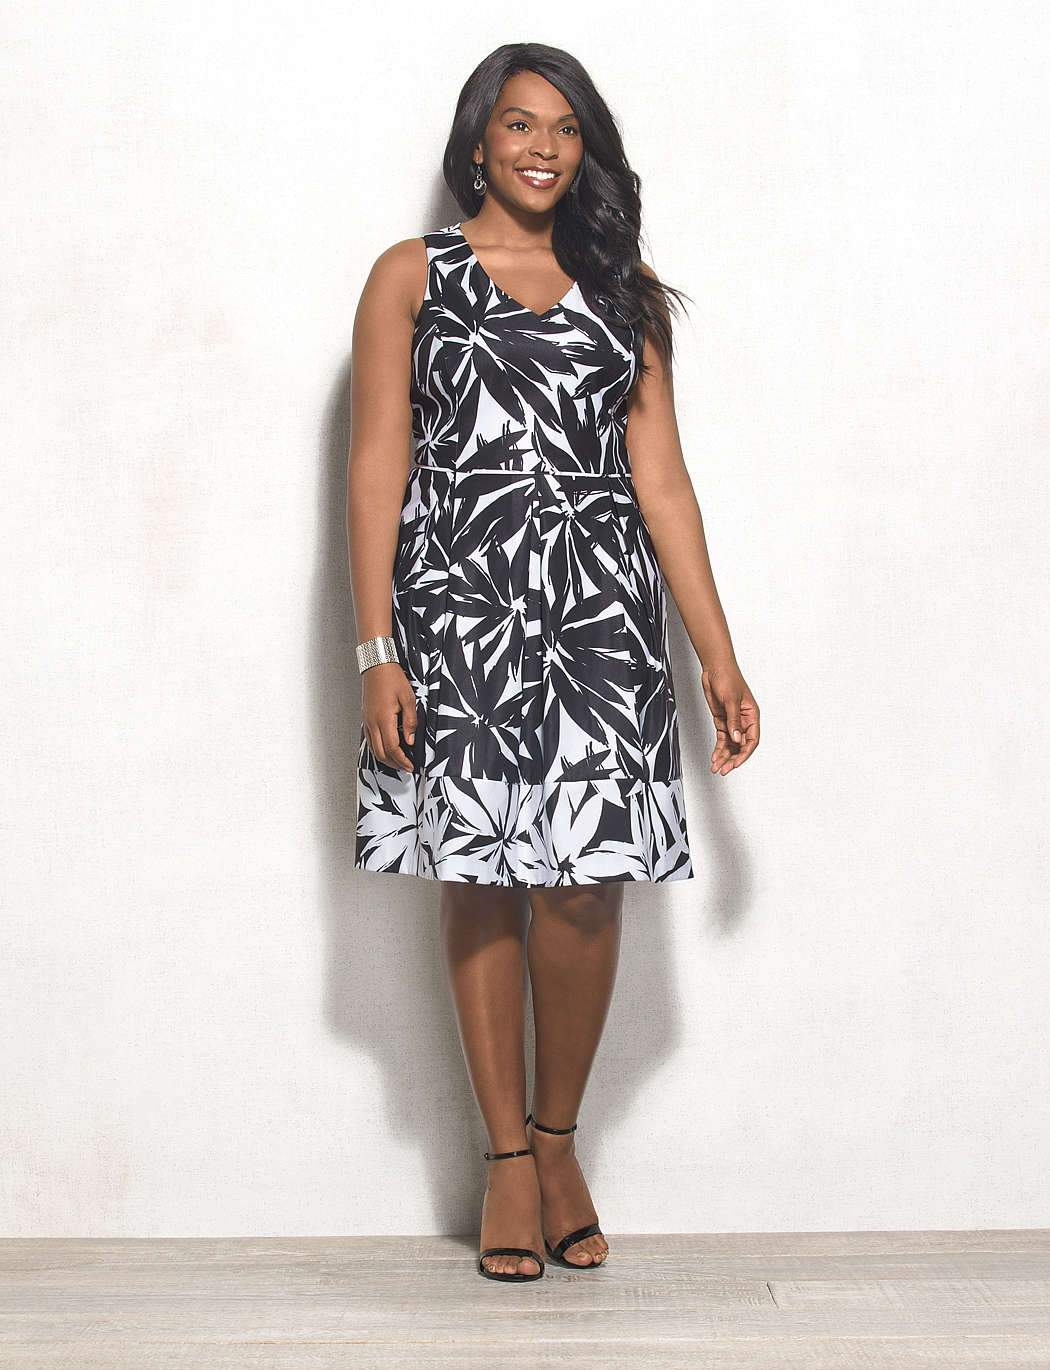 Beyond By Ashley Graham for DressBarn- The Floral Dress